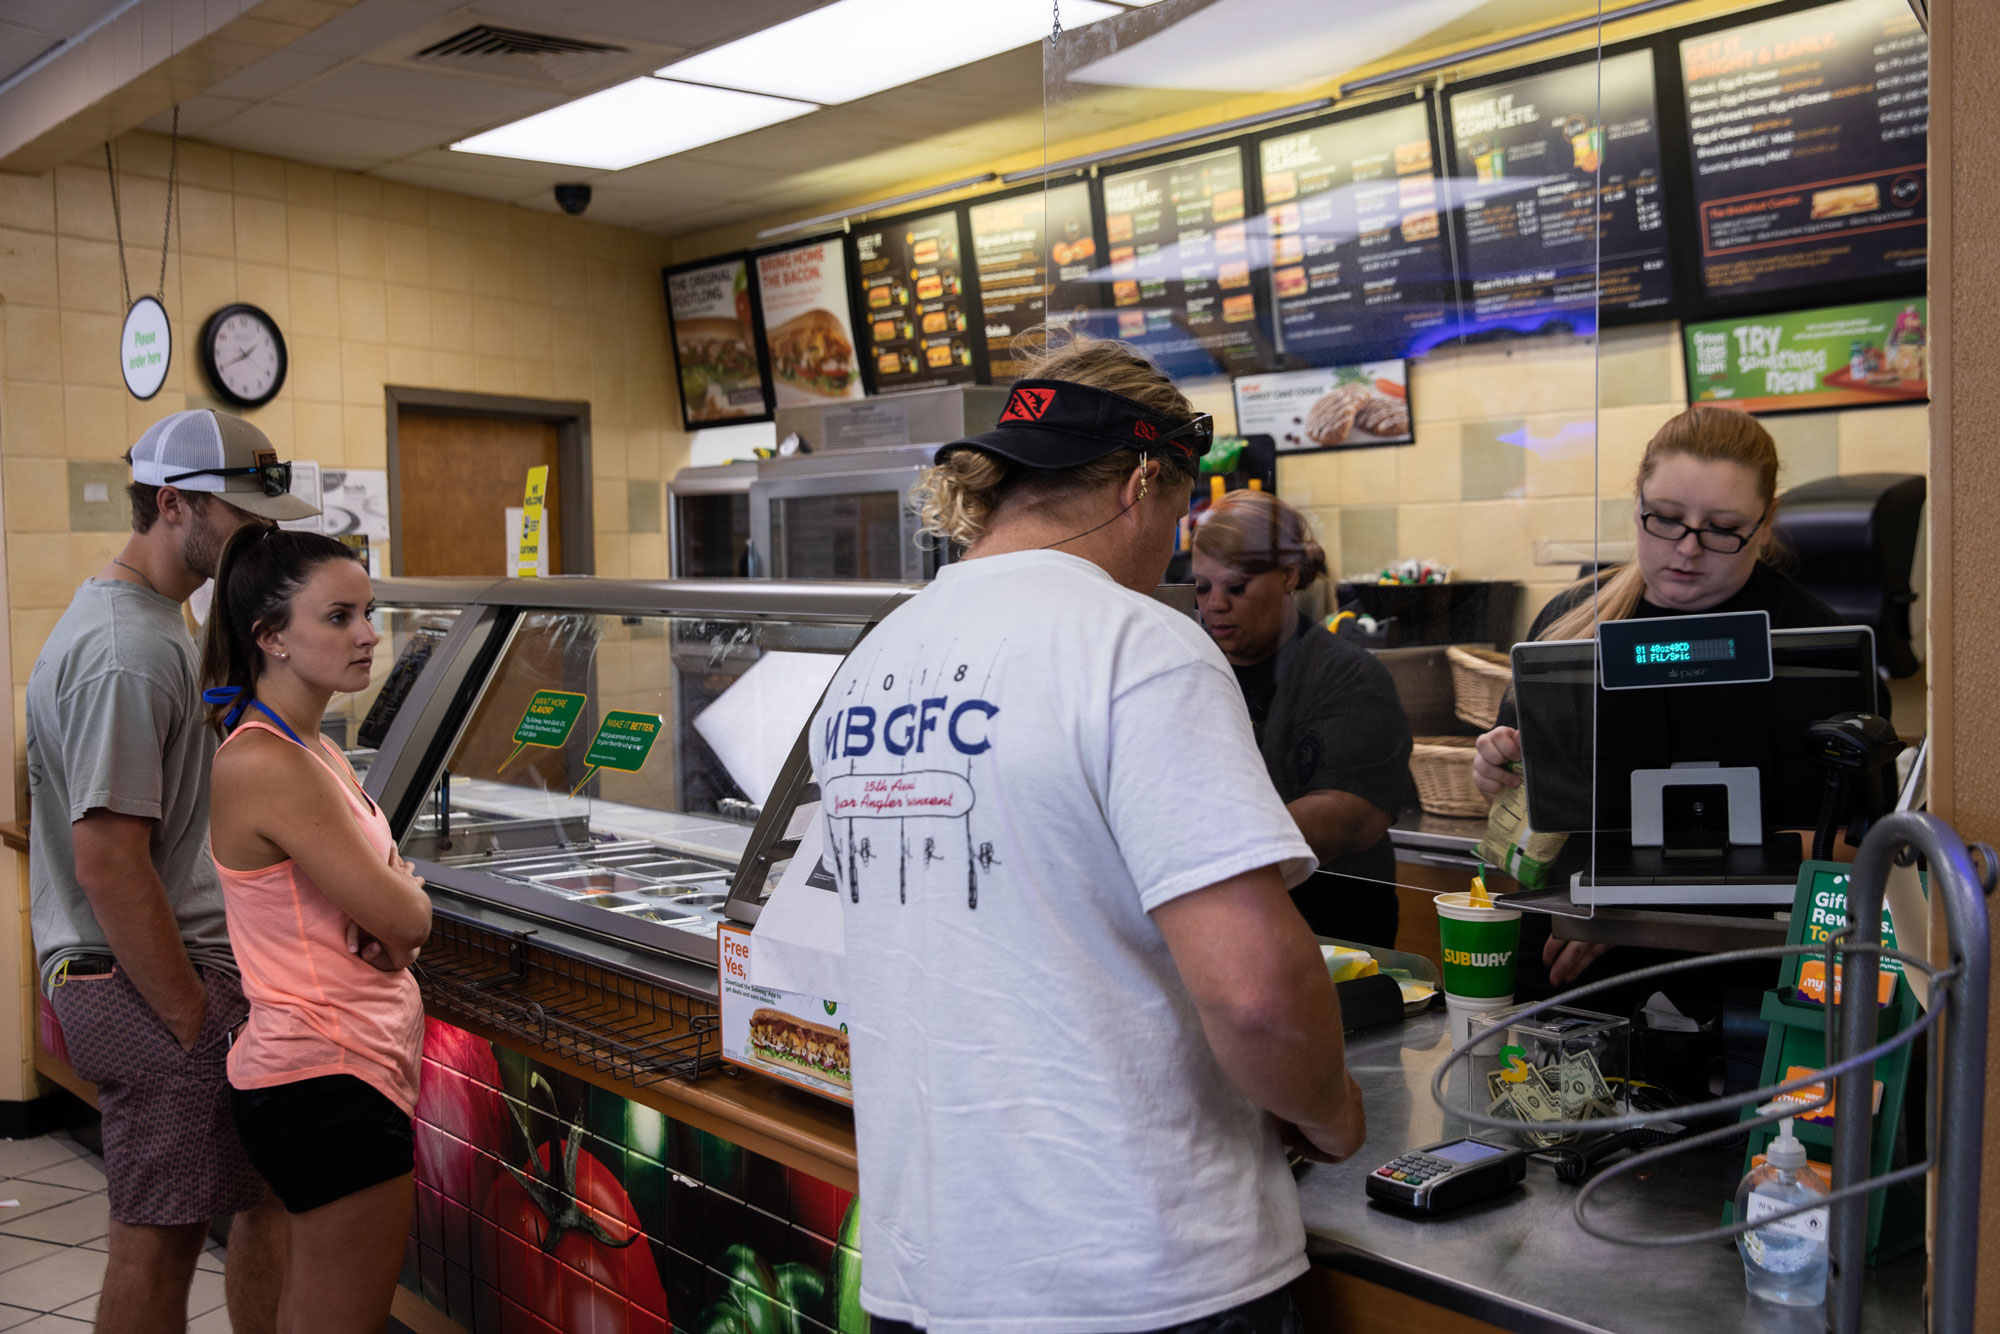 Customers wait in line to place orders at a fast food restaurant in Dauphin Island, Alabama, on May 1.